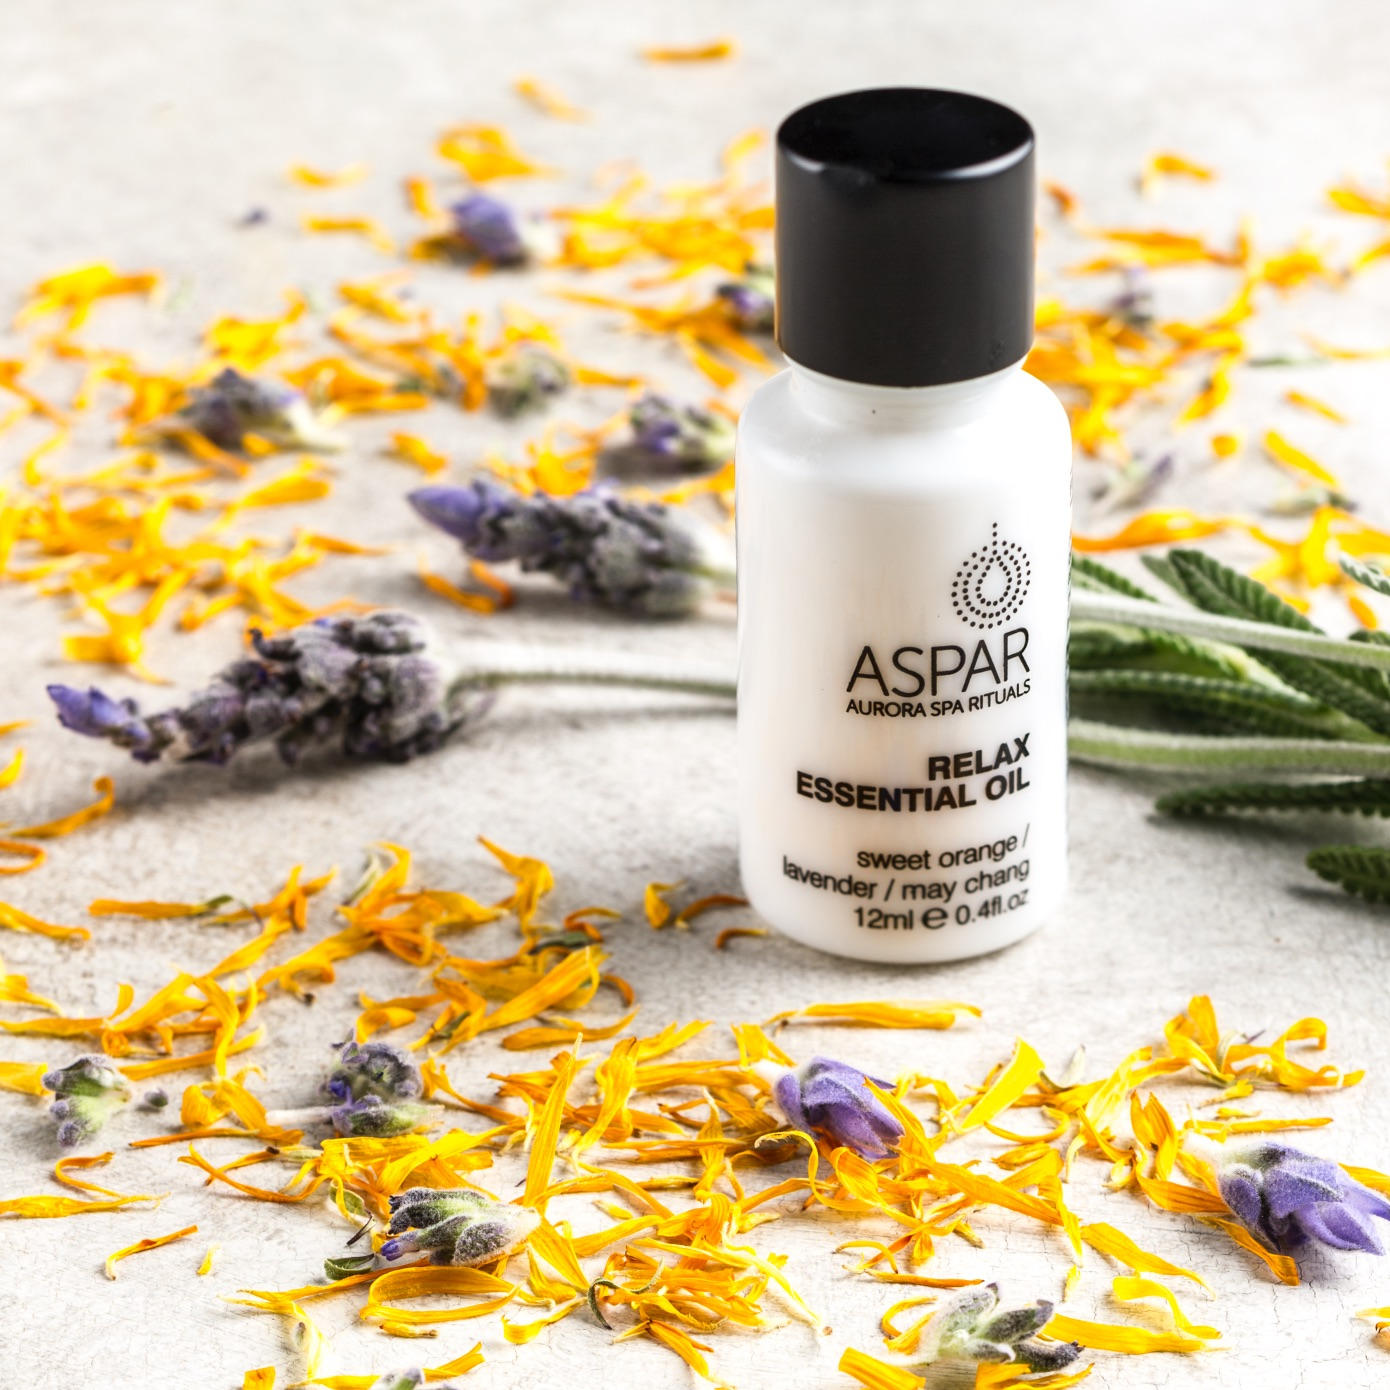 ASPAR relax essential oil